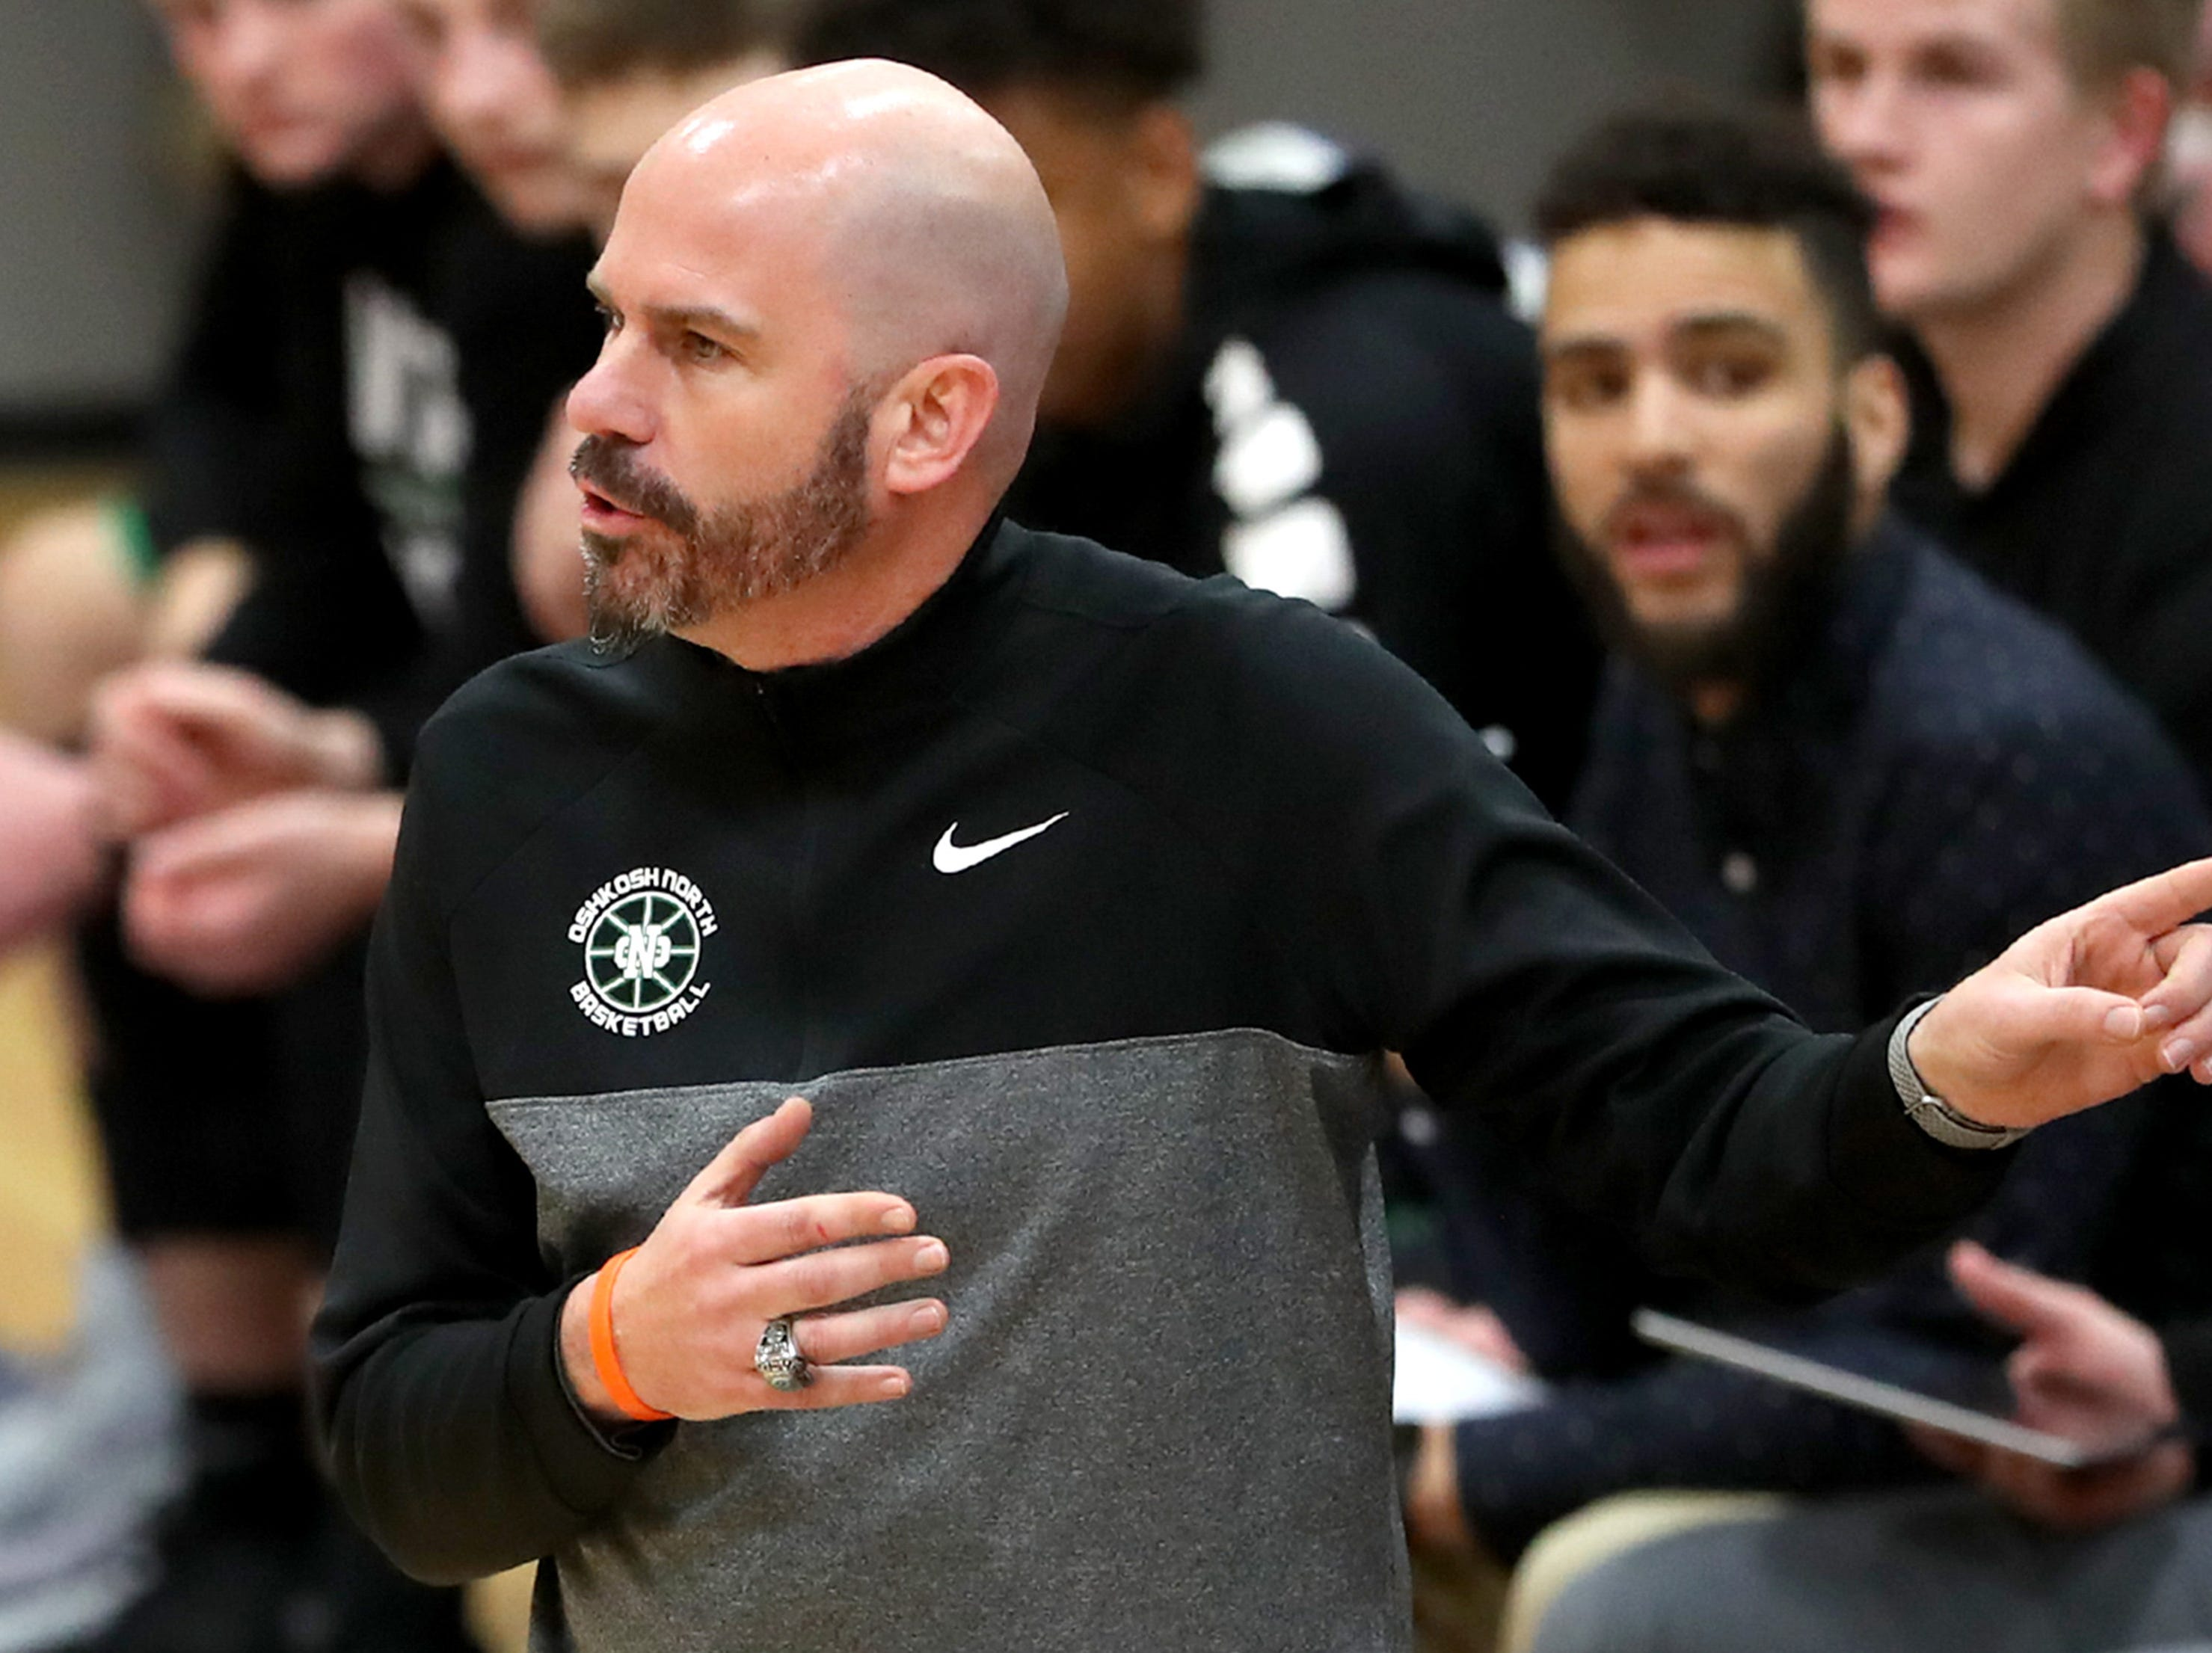 Oshkosh North High School's head coach Brad Weber speaks to an official during their game against Appleton West High School Tuesday, Jan. 15, 2019, at Appleton West High School in Appleton, Wis. Appleton West High School defeated Oshkosh North High School 72-63.Danny Damiani/USA TODAY NETWORK-Wisconsin